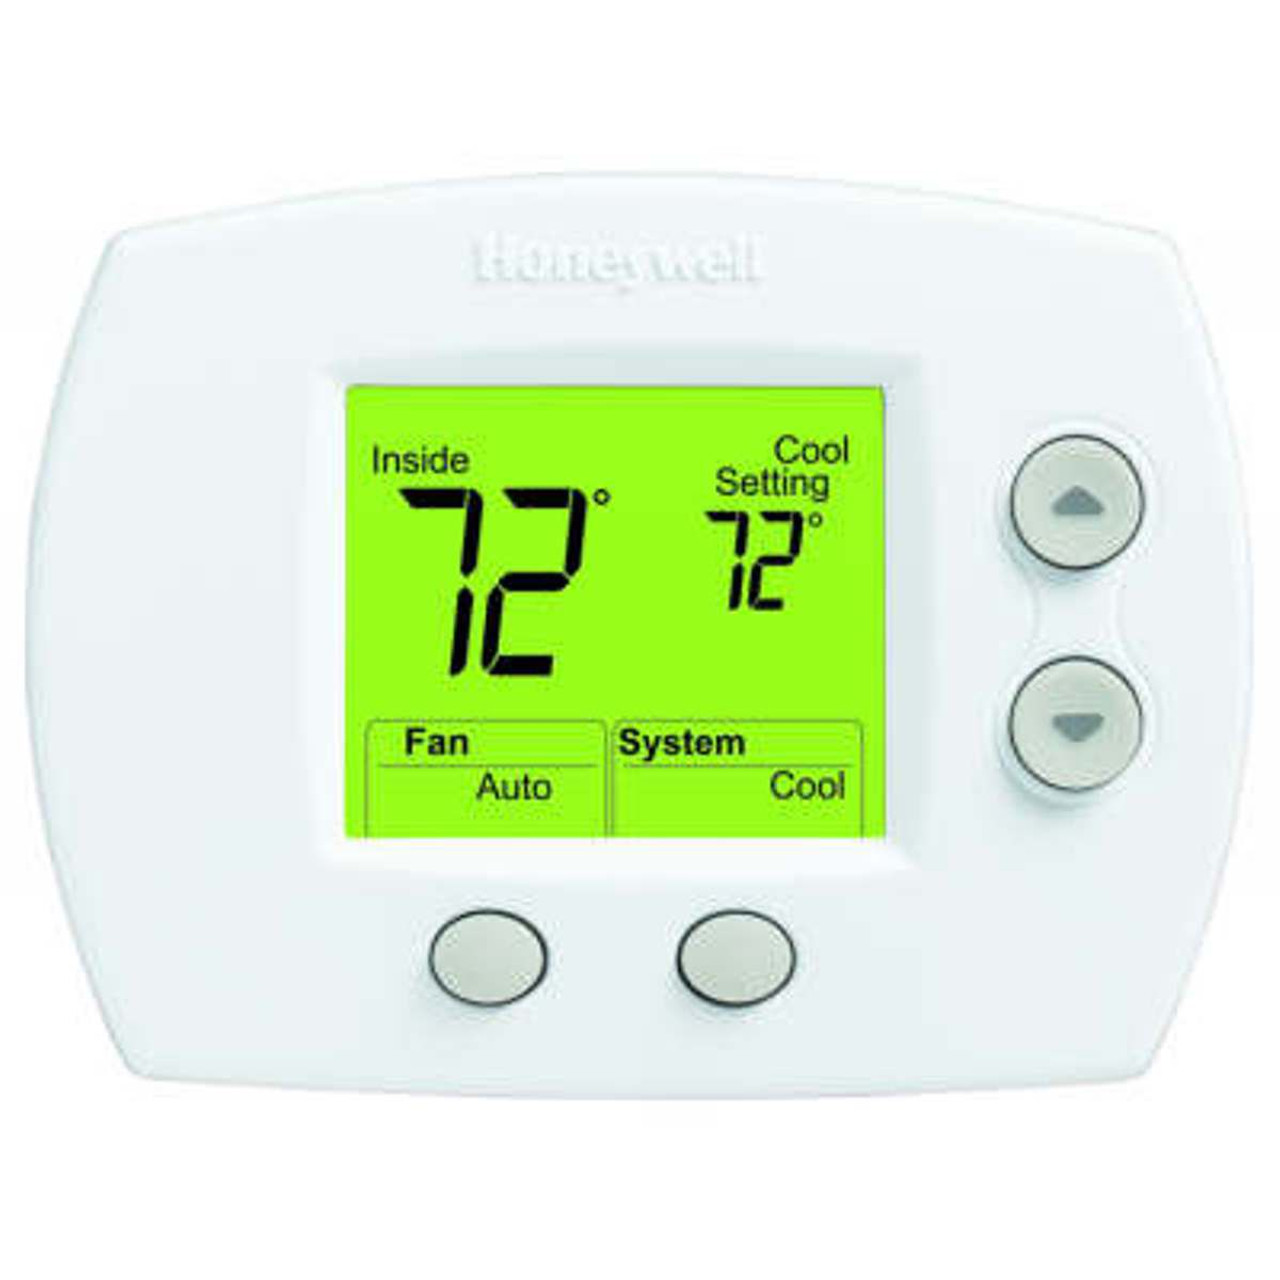 What Is Auxiliary Heat >> Th5110d1006 Thermostat 1h C Conventional Or Hp W O Auxiliary Heat